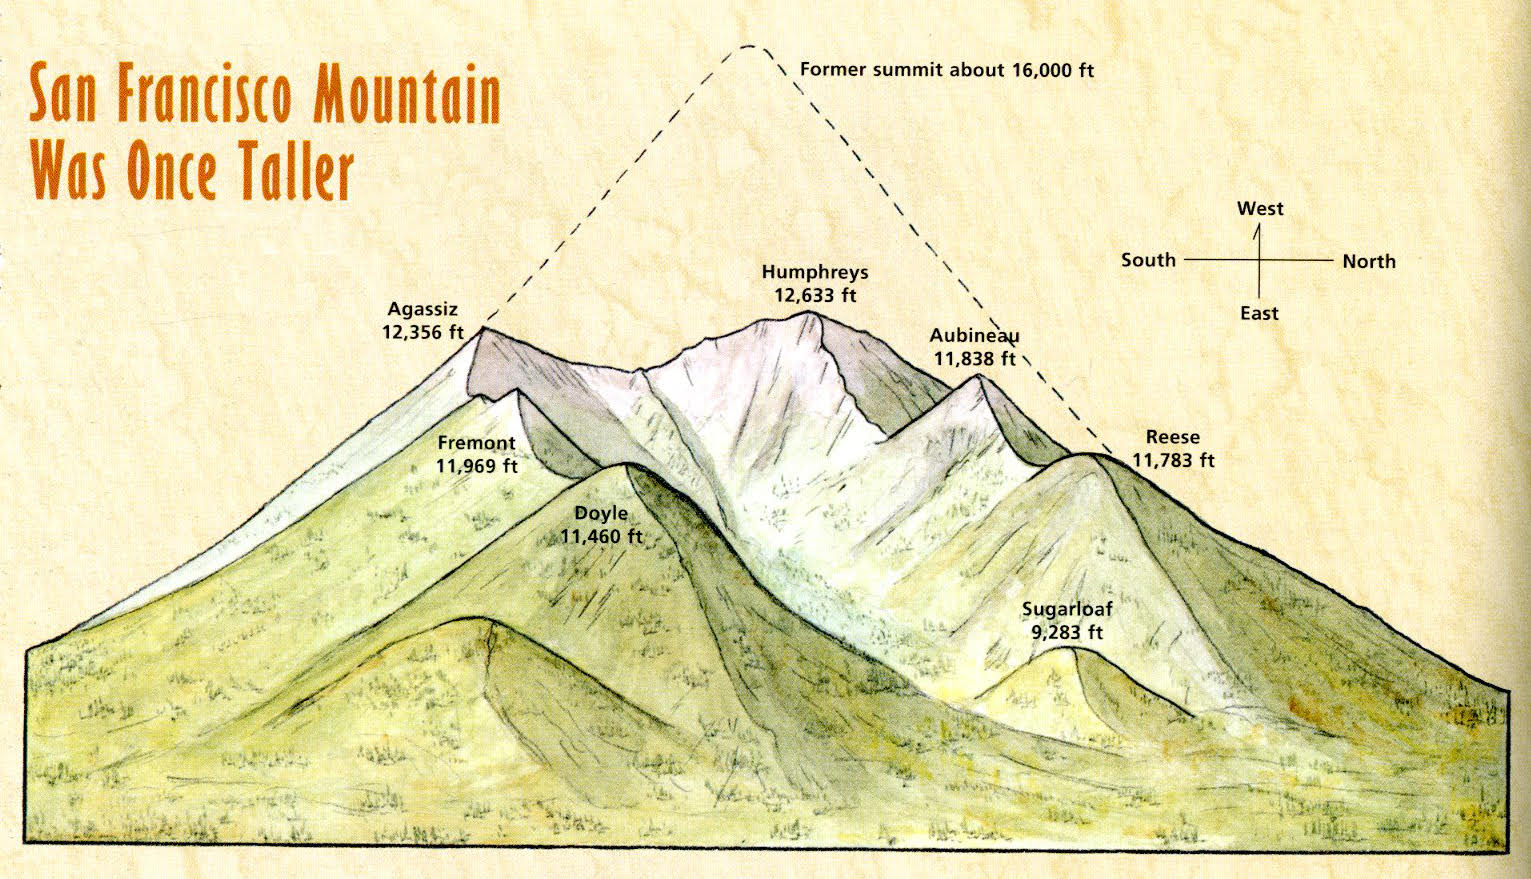 San Francisco Mountain - Before the collapse the elevation of San Francisco Mountain is estimated to be somewhere between 14,000 and 16,000 ft. [image from https://www.snowbowl.ski/san-francisco-peaks-geology/]